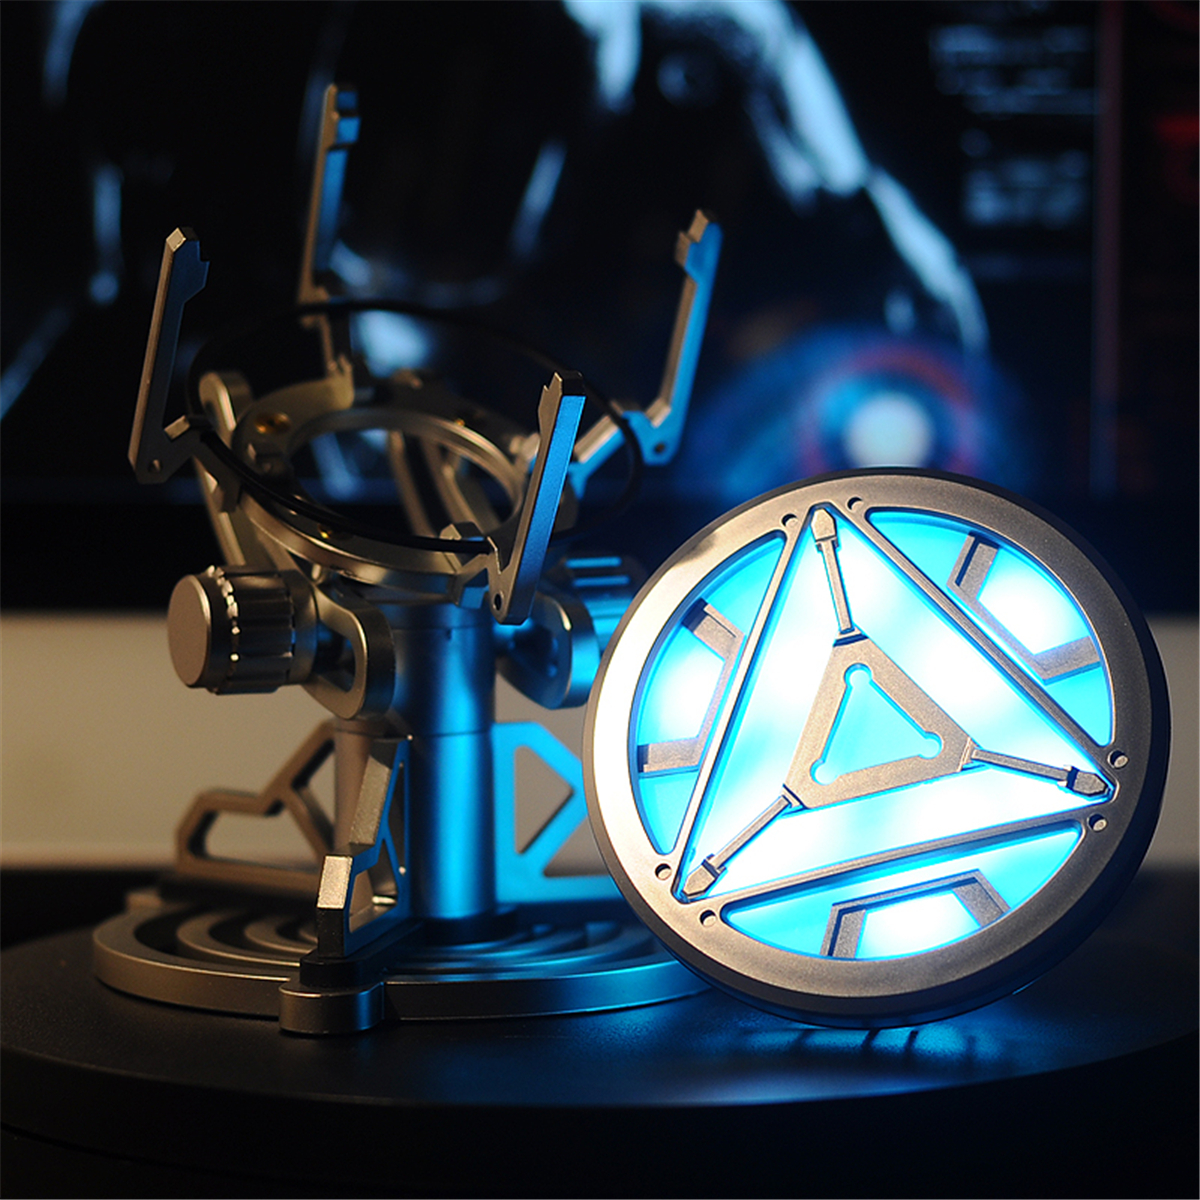 1:1 ARC REACTOR LED Chest Heart Light-up Lamp Movie ABC Props Model Kit Science Toy 44